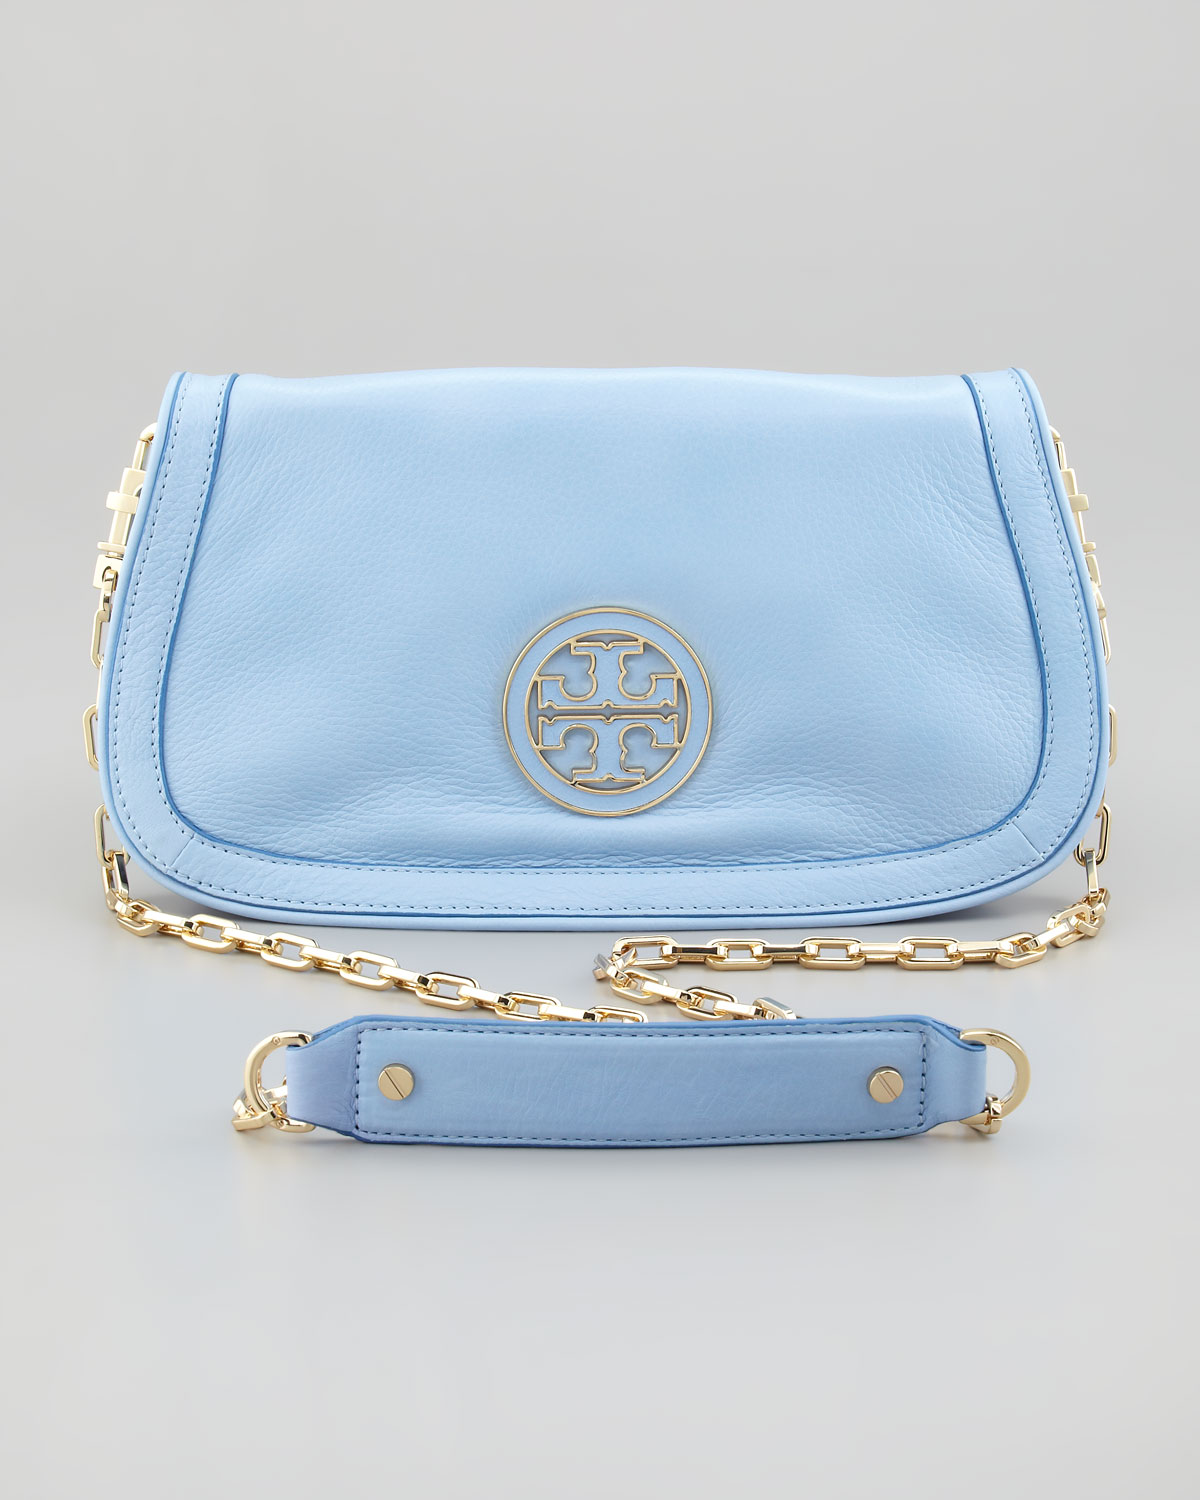 Lyst - Tory Burch Amanda Leather Clutch in Blue 2dbb3e320